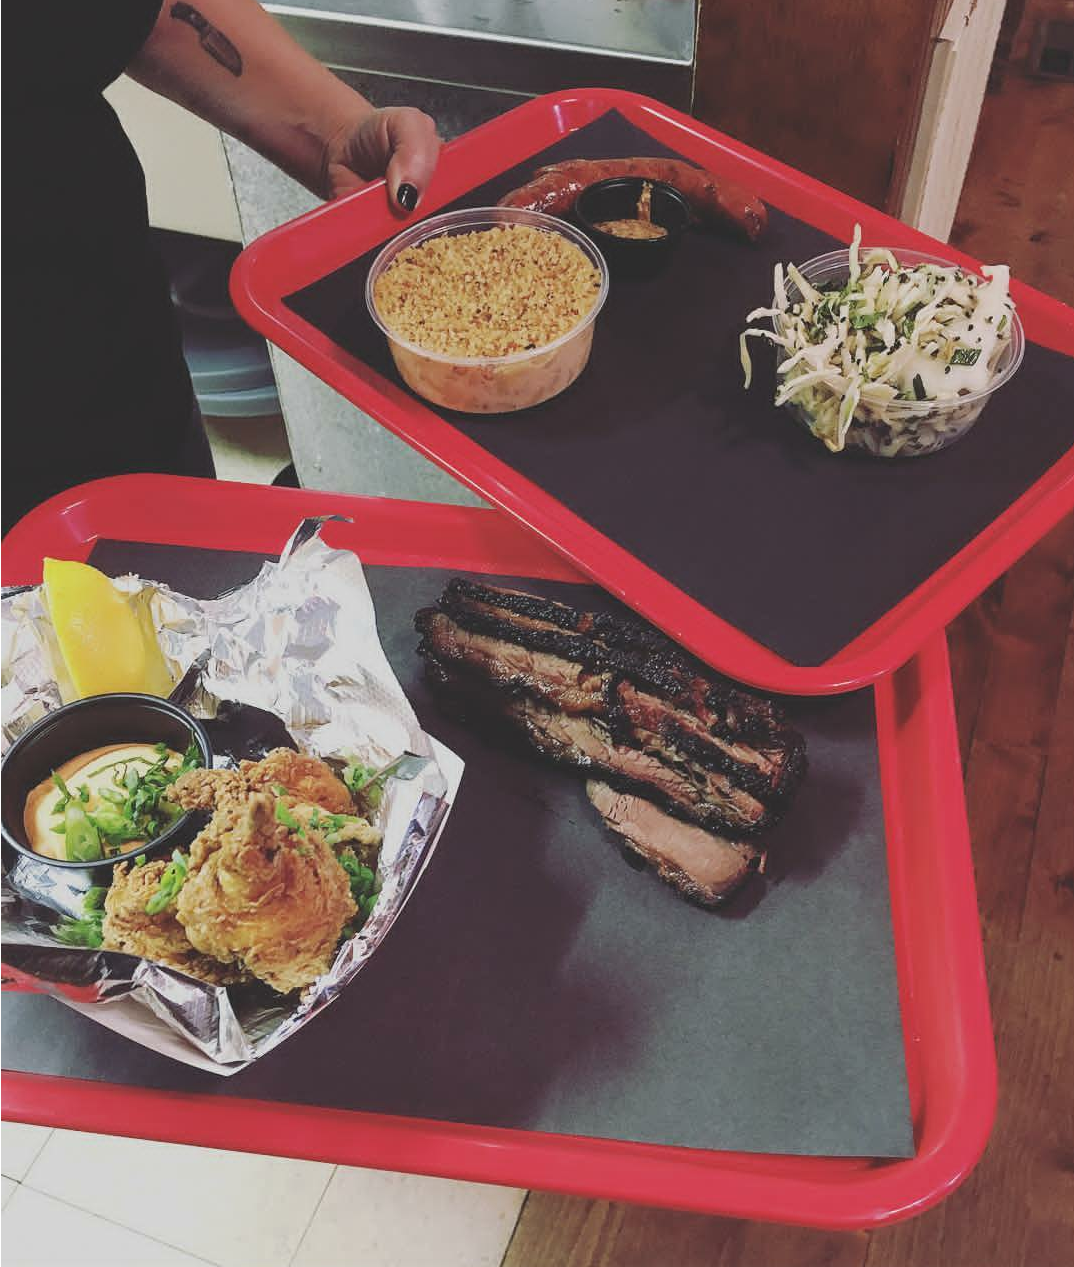 This photo is from Blackboar Bar B Q's Instagram feed, BUT...it actually was taken of OUR FOOD! Ha!